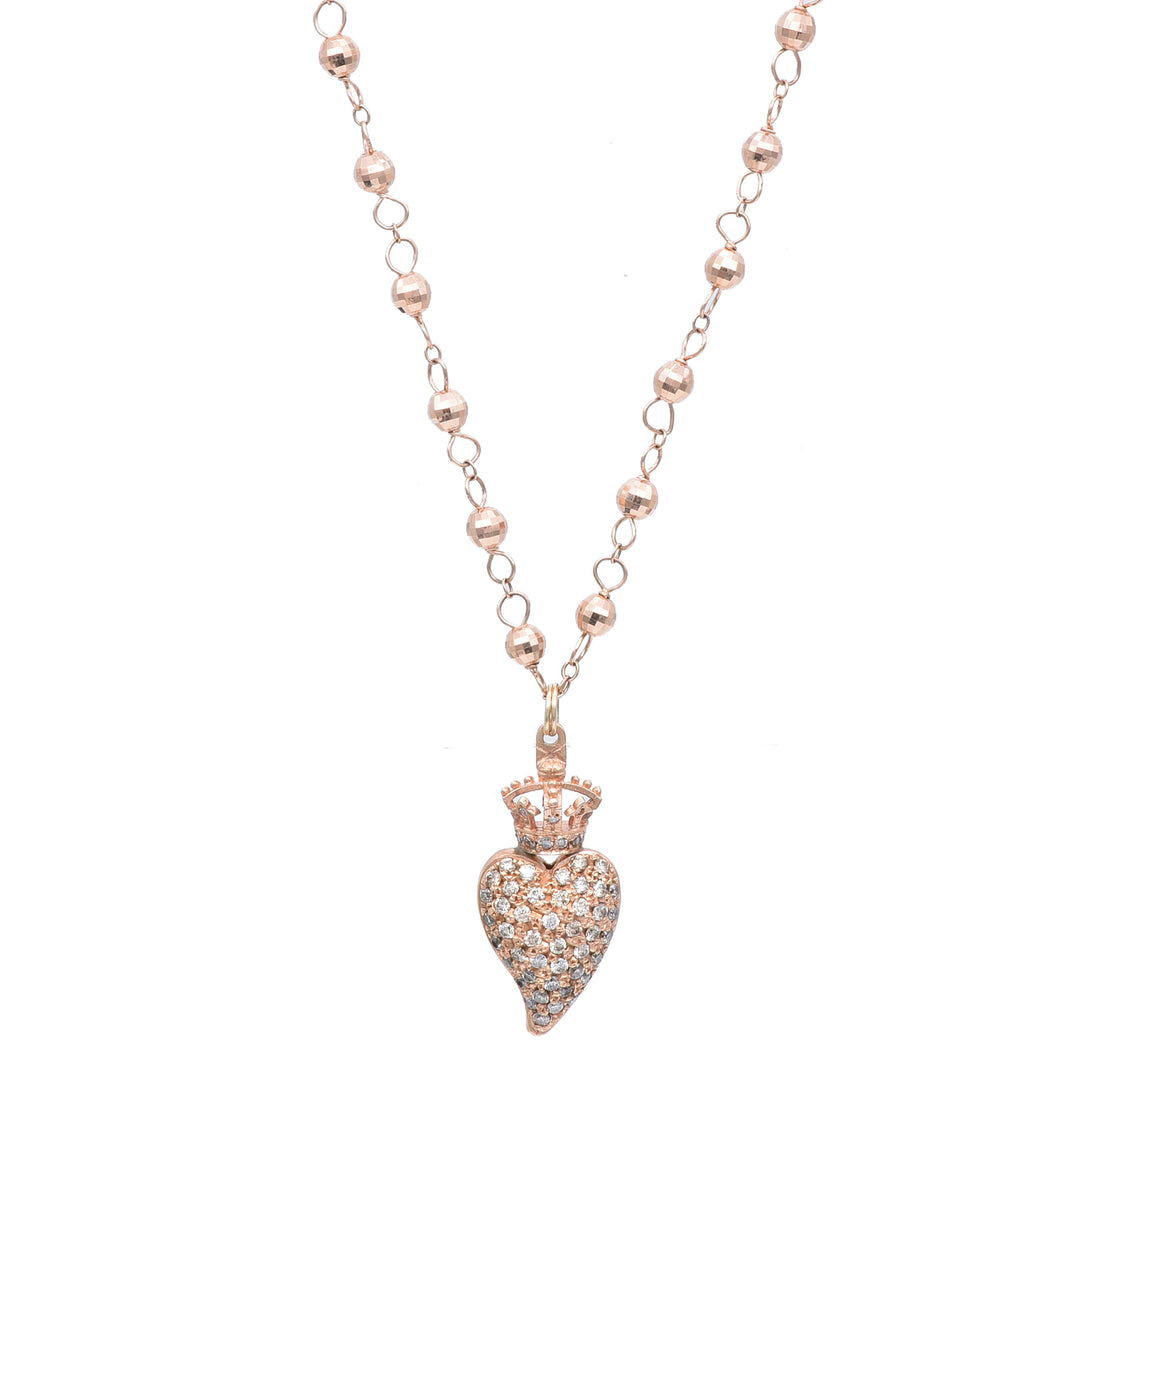 "Designed by Devon Page McCleary, this charming heart necklace is crafted in 18k rose gold. The pavé diamond heart is 1 1/8"" tall and hangs from a 16"" beaded chain."